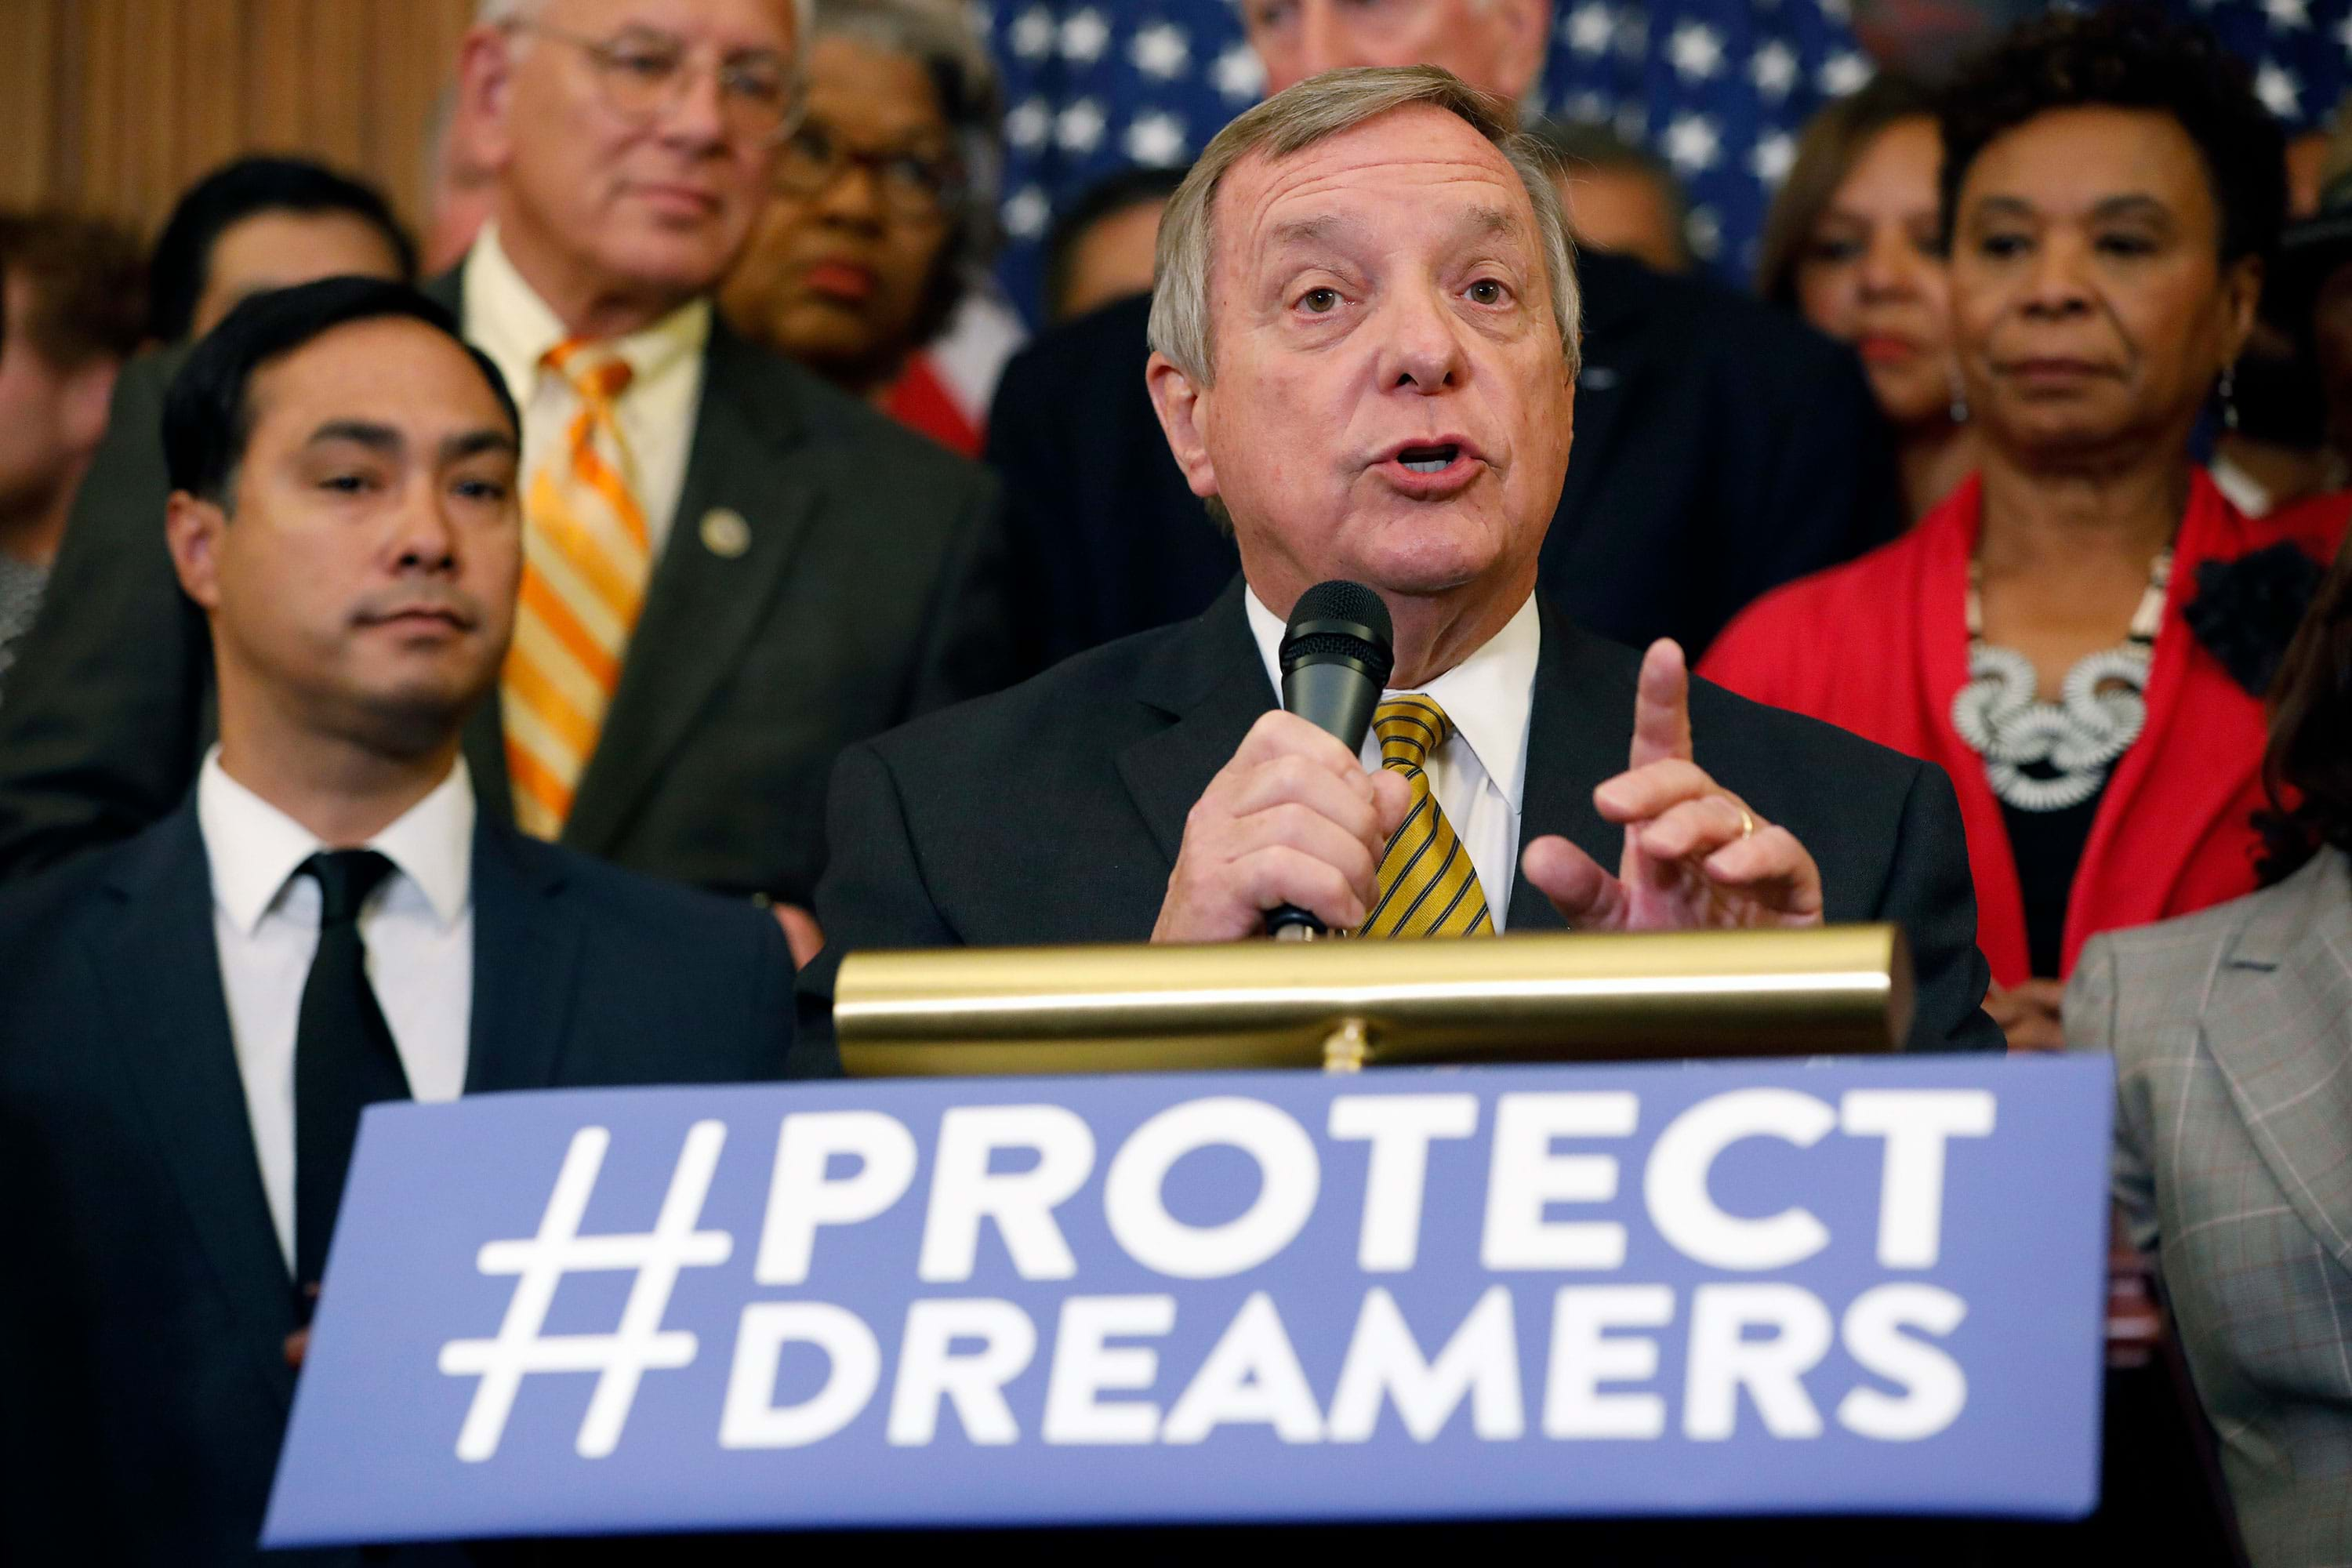 U.S. Senator Dick Durbin speaking at a podium with a sign that reads: Protect Dreamers.